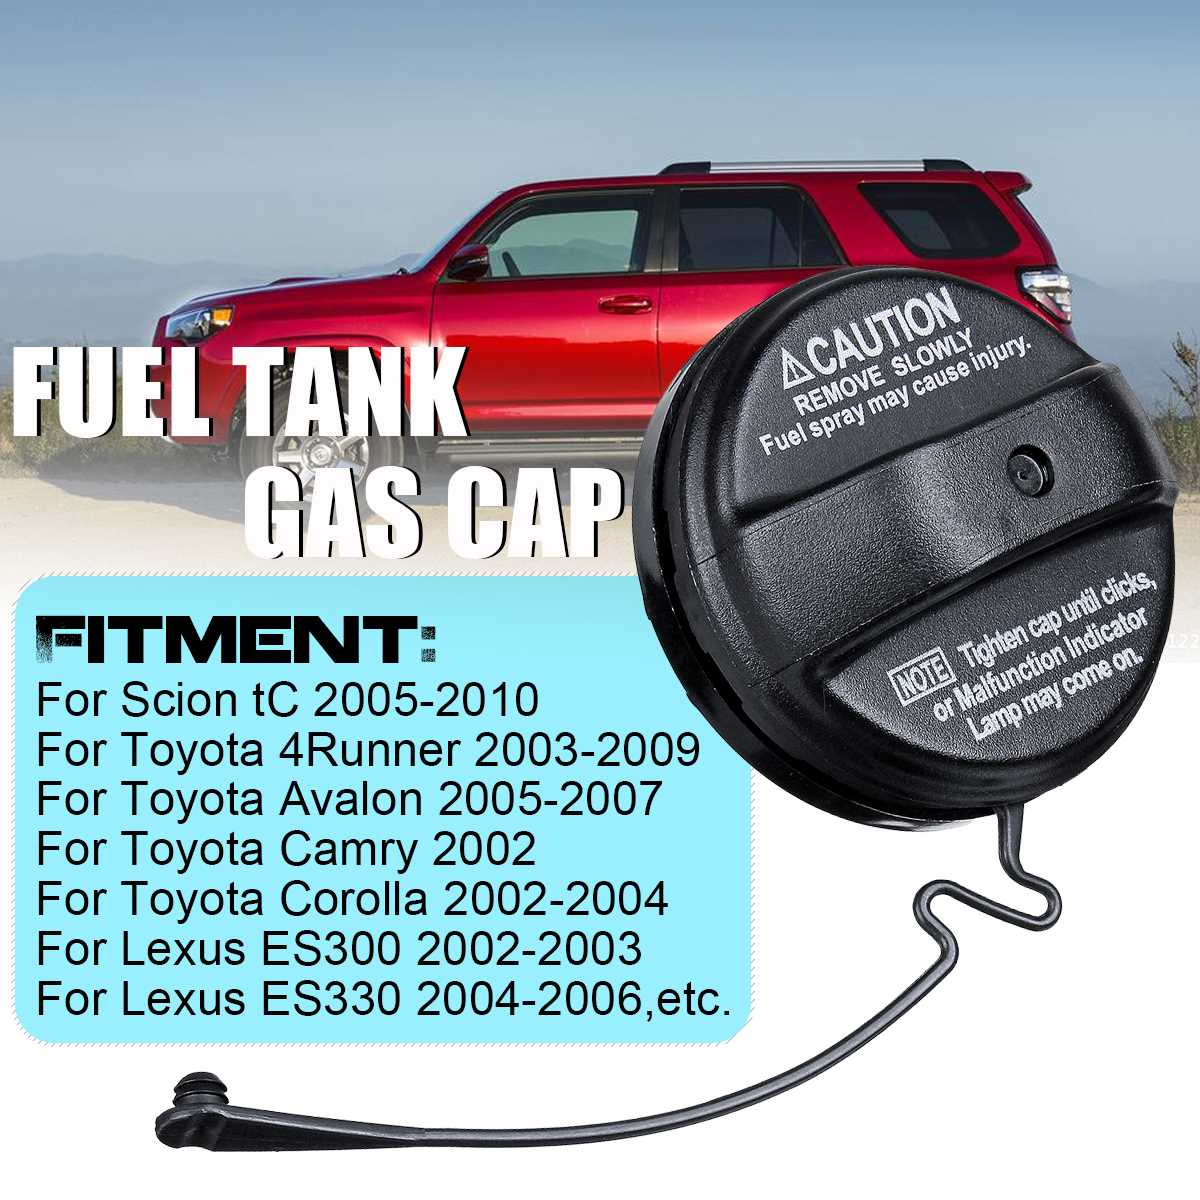 New Fuel Tank Gas Cap 77300-33070 For Toyota Corolla 4Runner Avalon Camry Highlander For Lexus For Scion